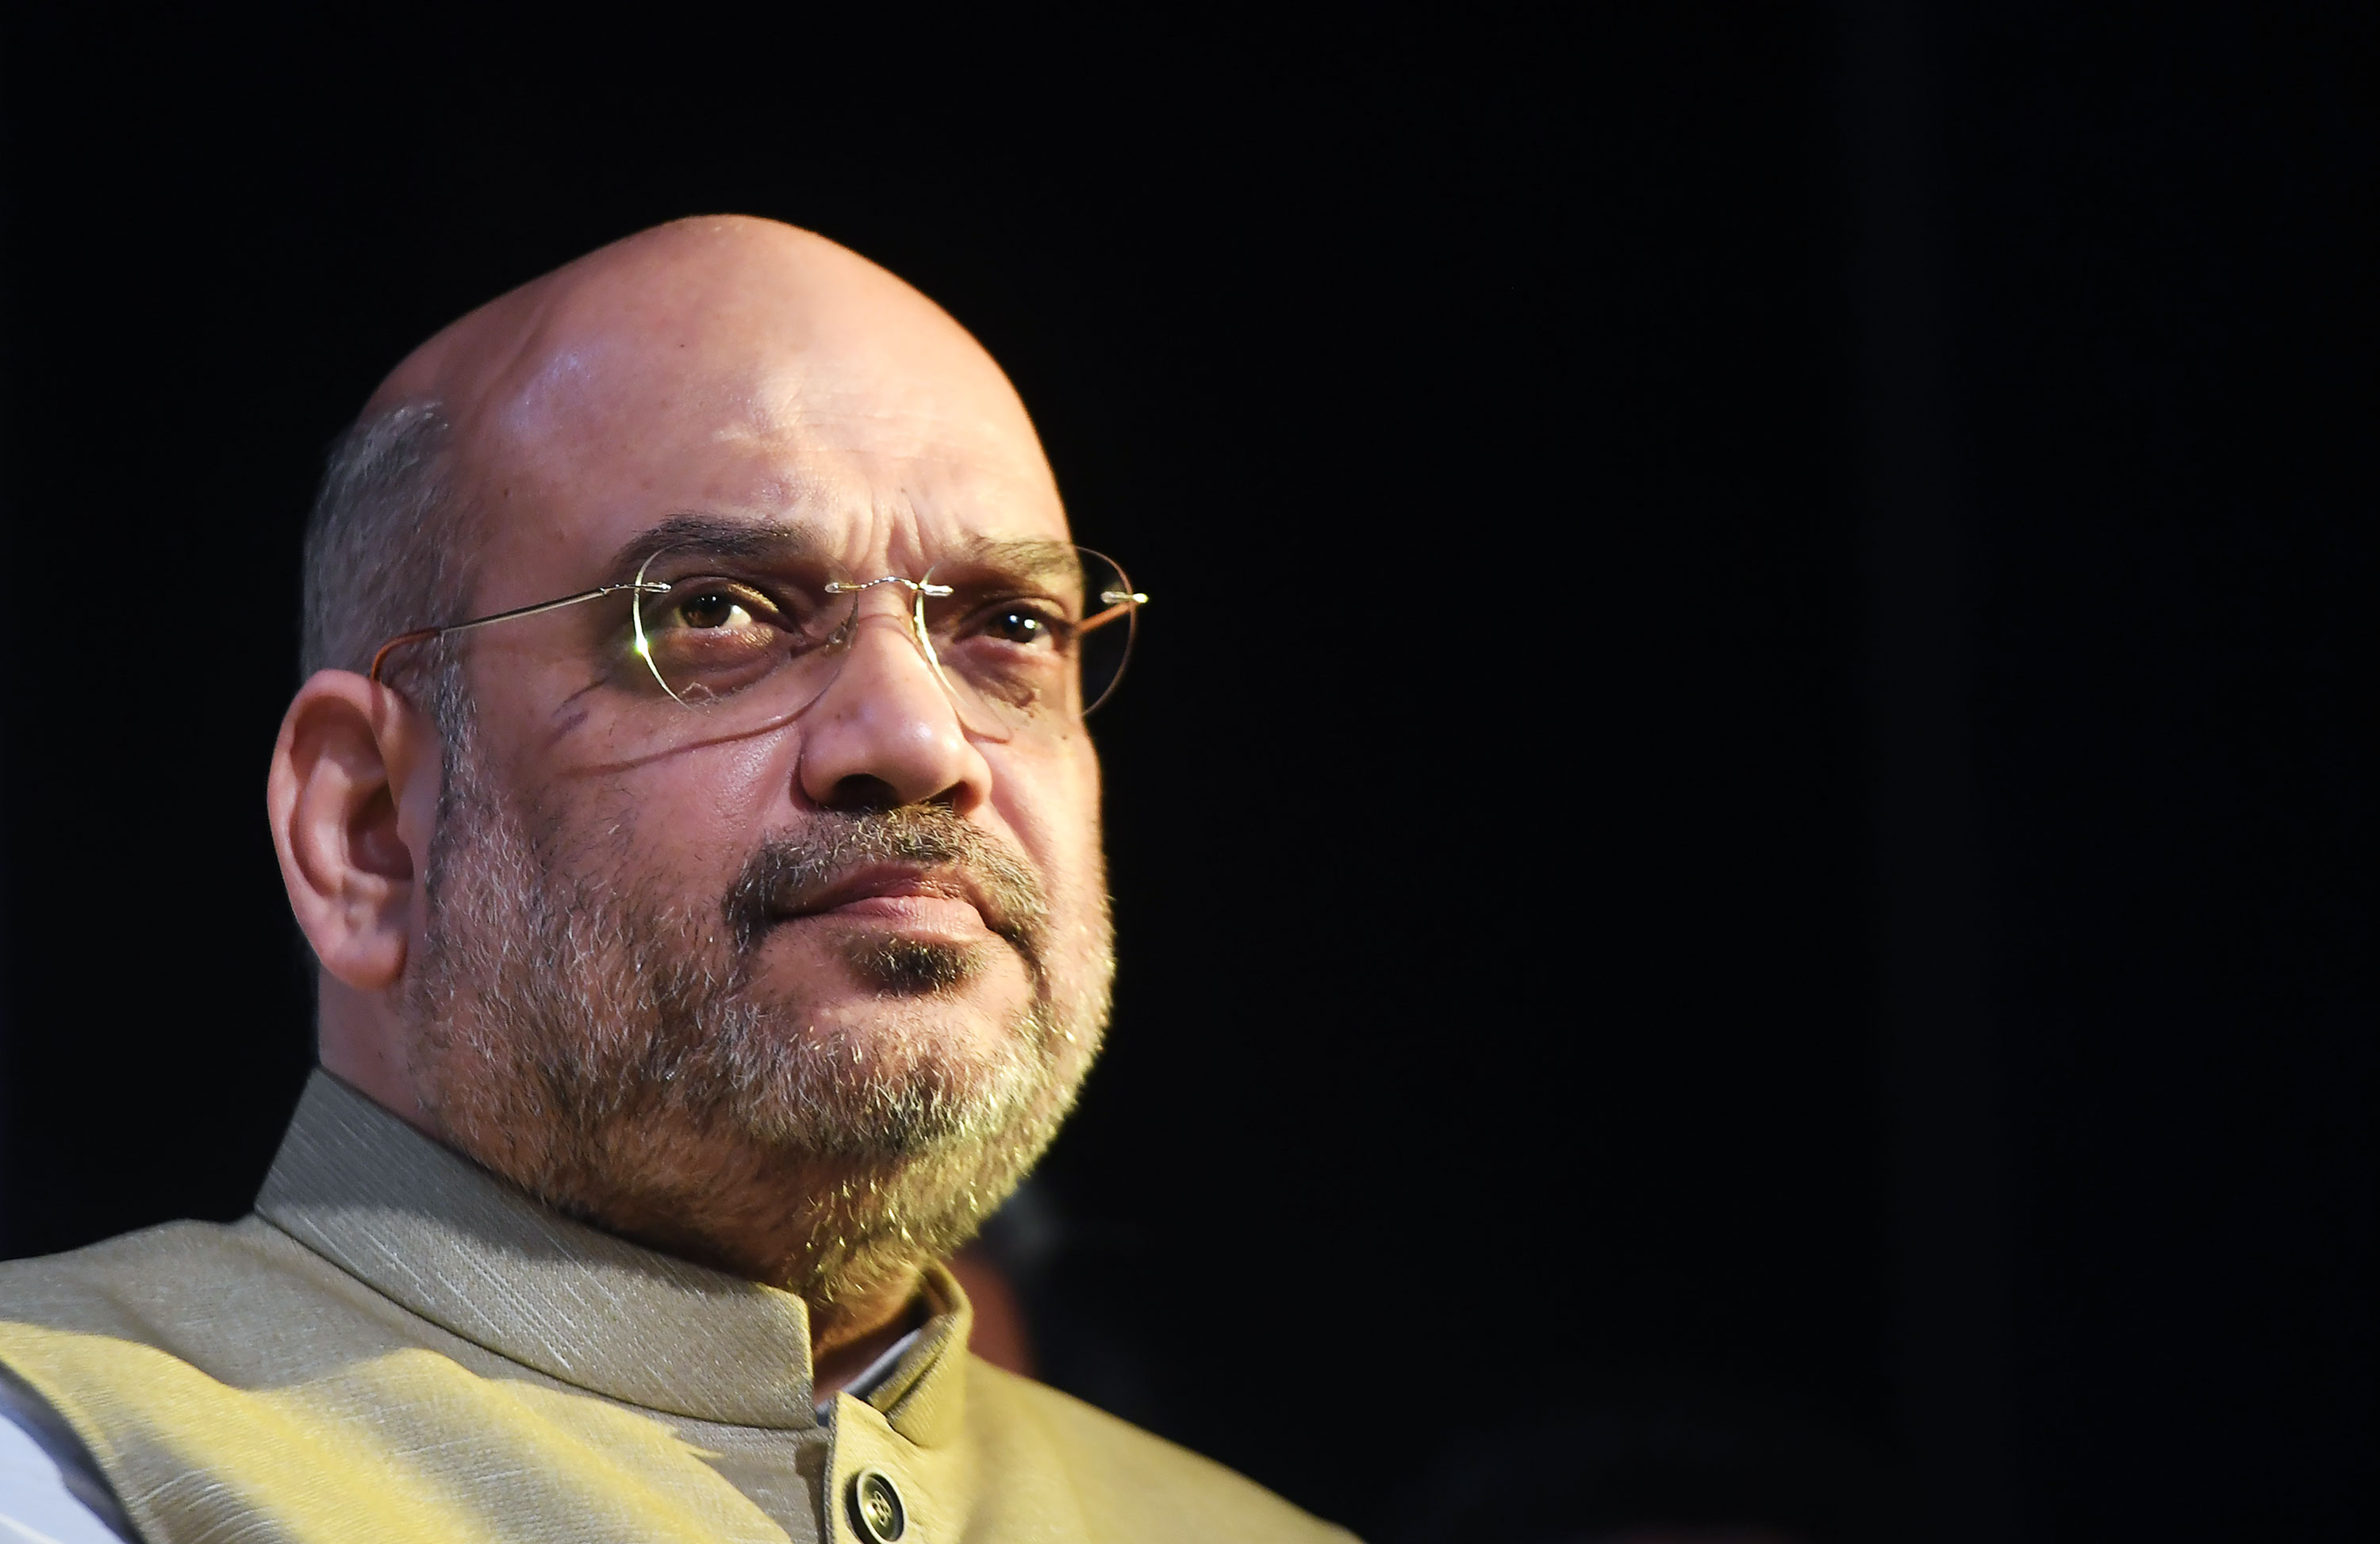 India's Minister of Home Affairs Amit Shah attends a meeting in Kolkata, India, in 2018.